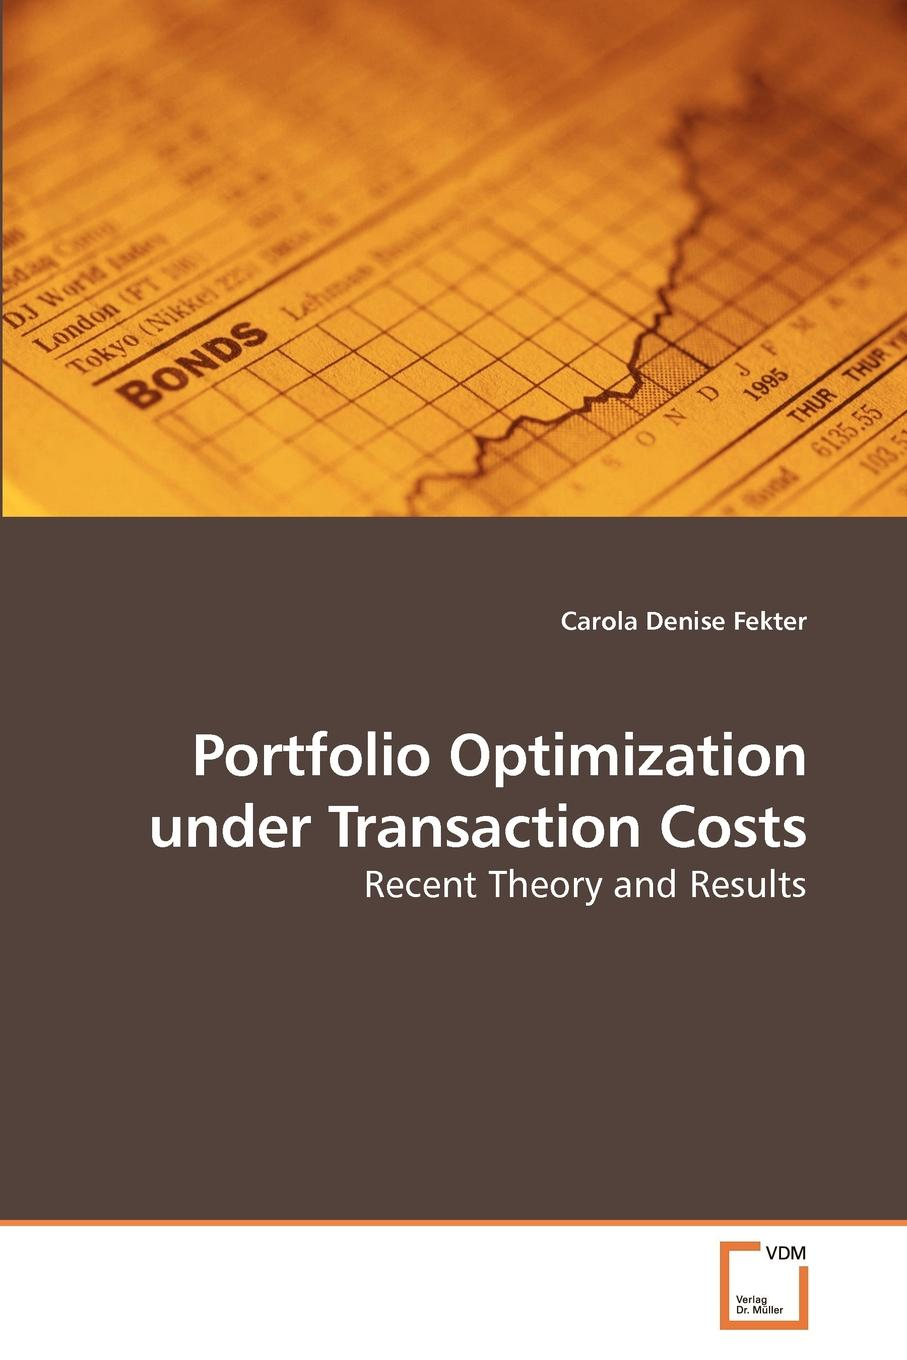 Carola Denise Fekter Portfolio Optimization under Transaction Costs halil kiymaz market microstructure in emerging and developed markets price discovery information flows and transaction costs